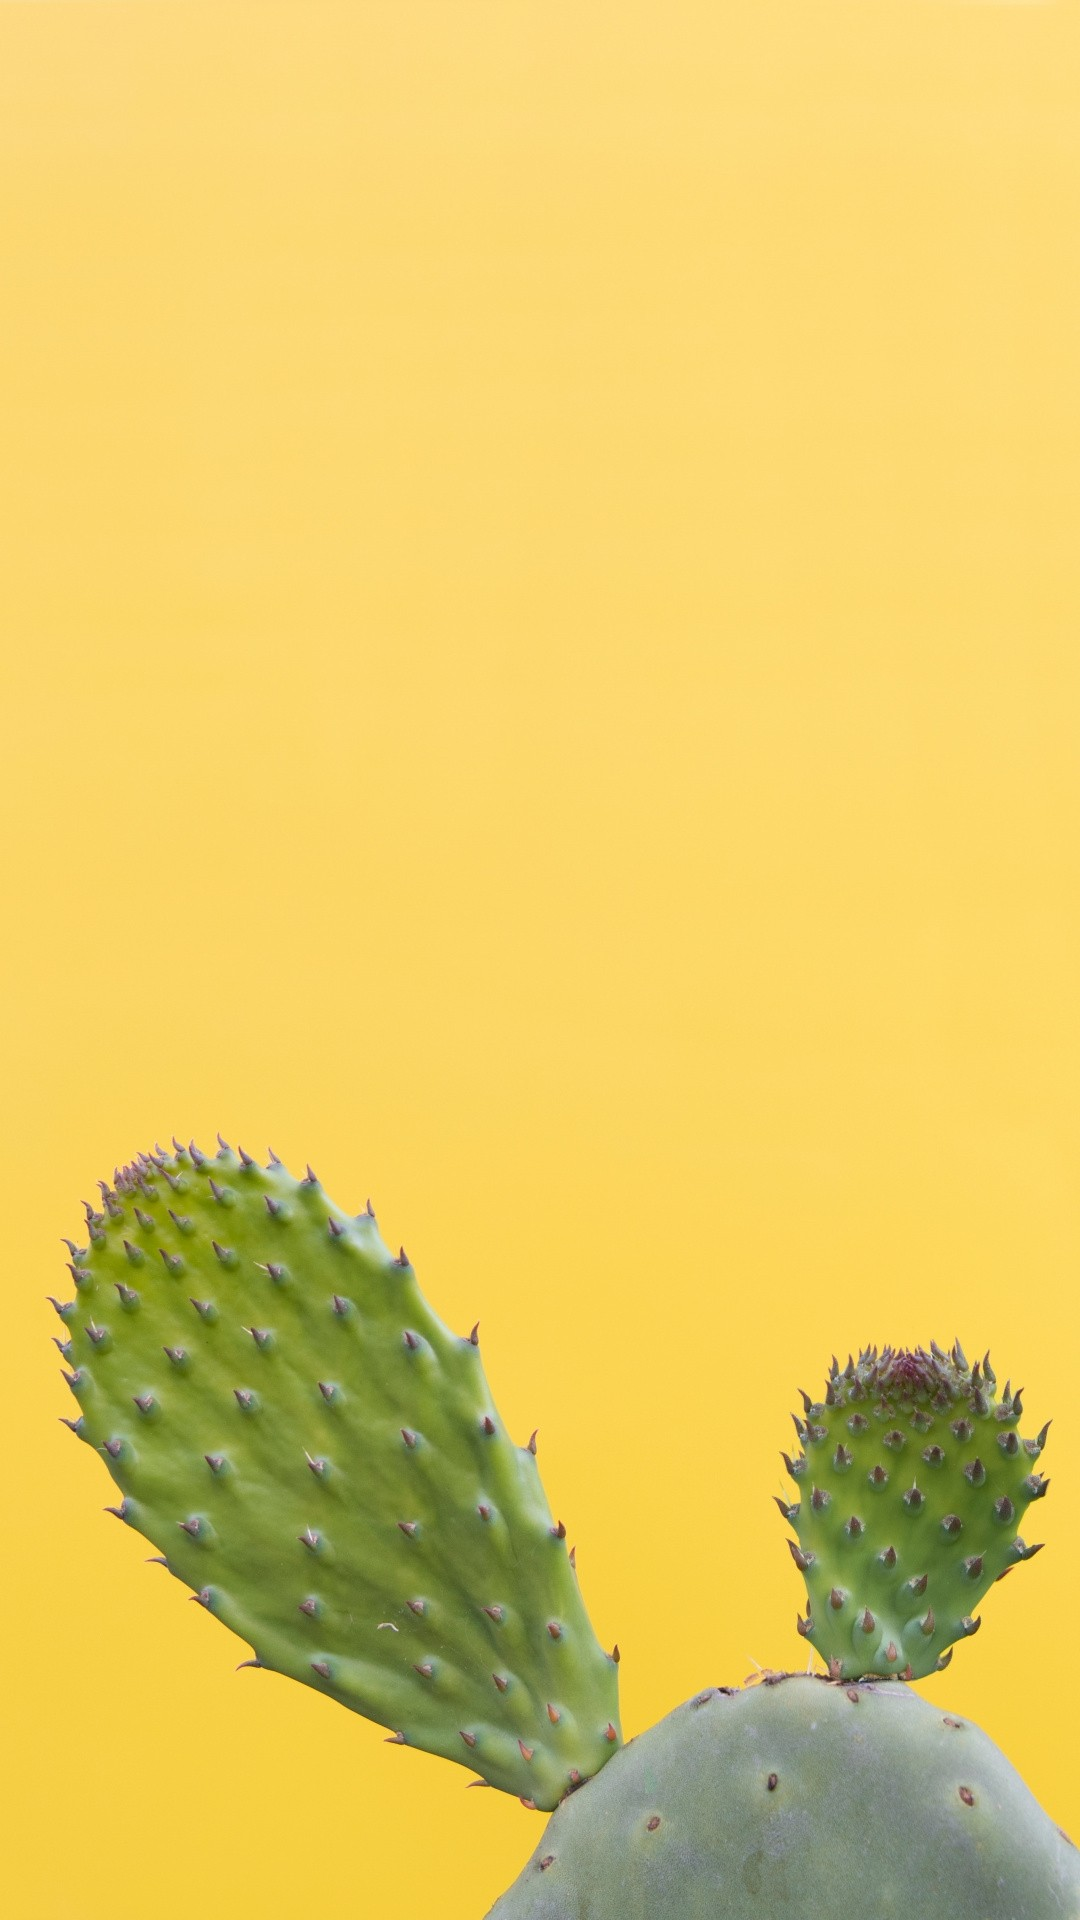 Cactus hd wallpaper for mobile